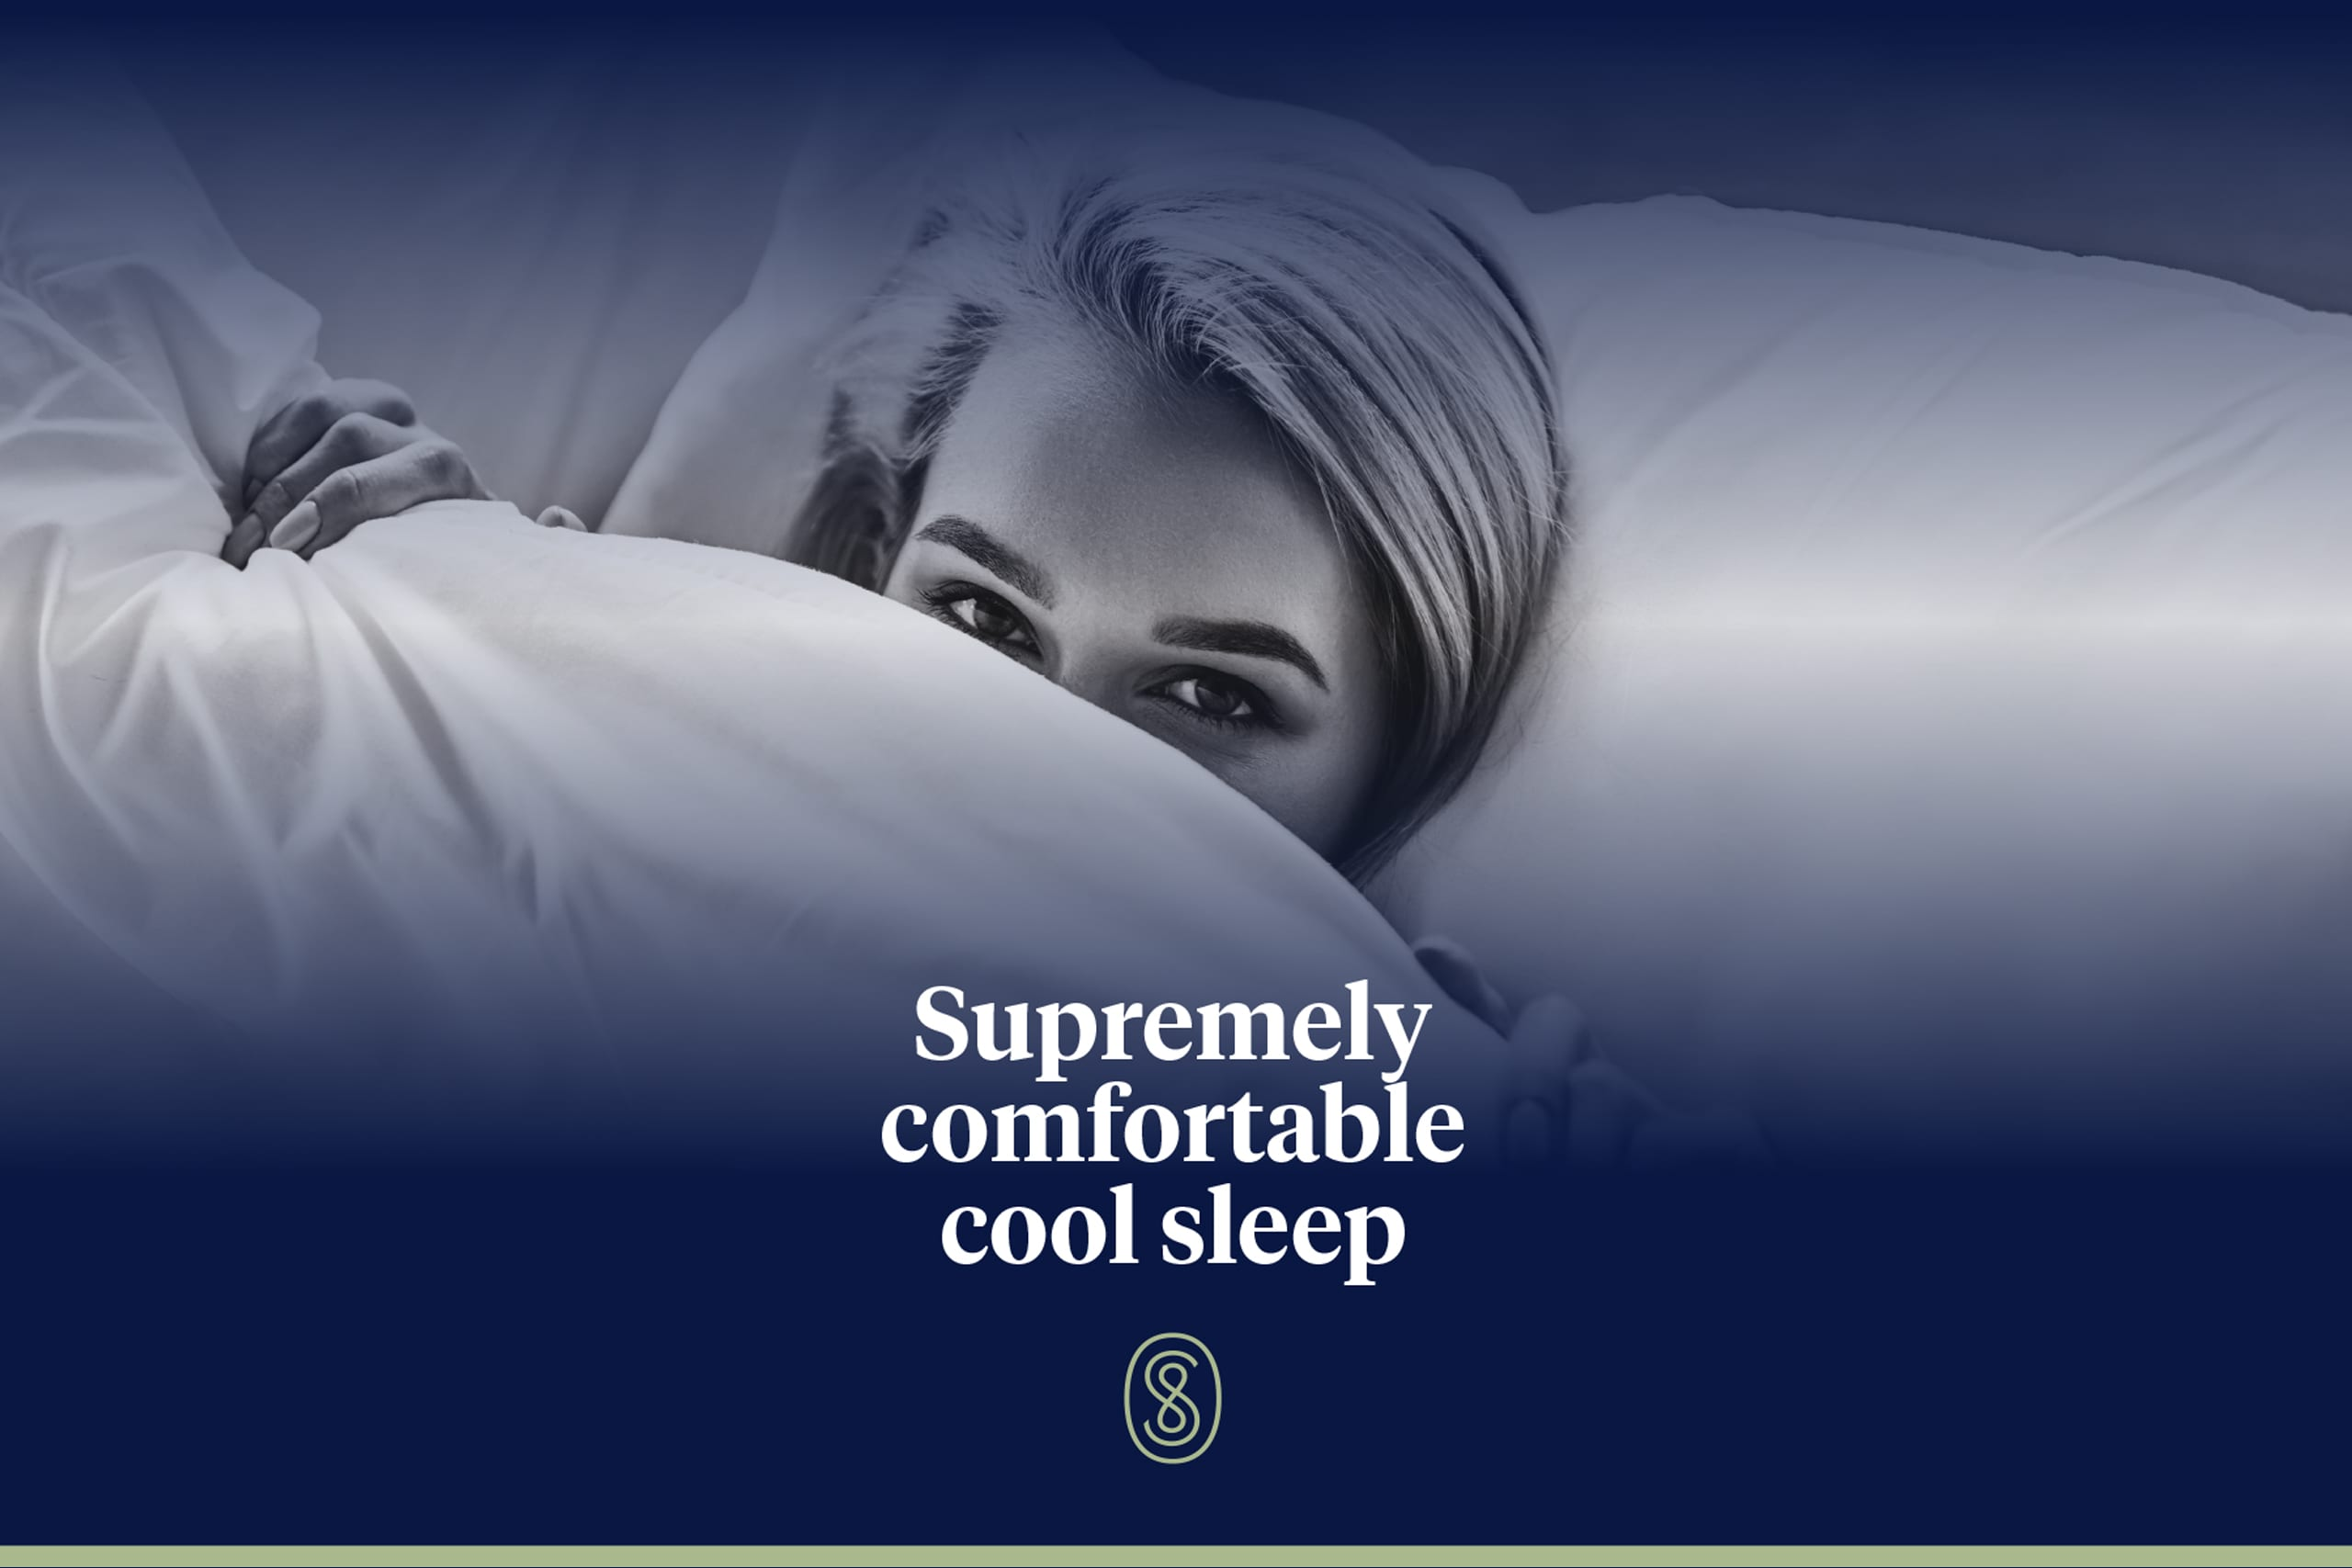 Supremely Comfortable Cool Sleep hero image